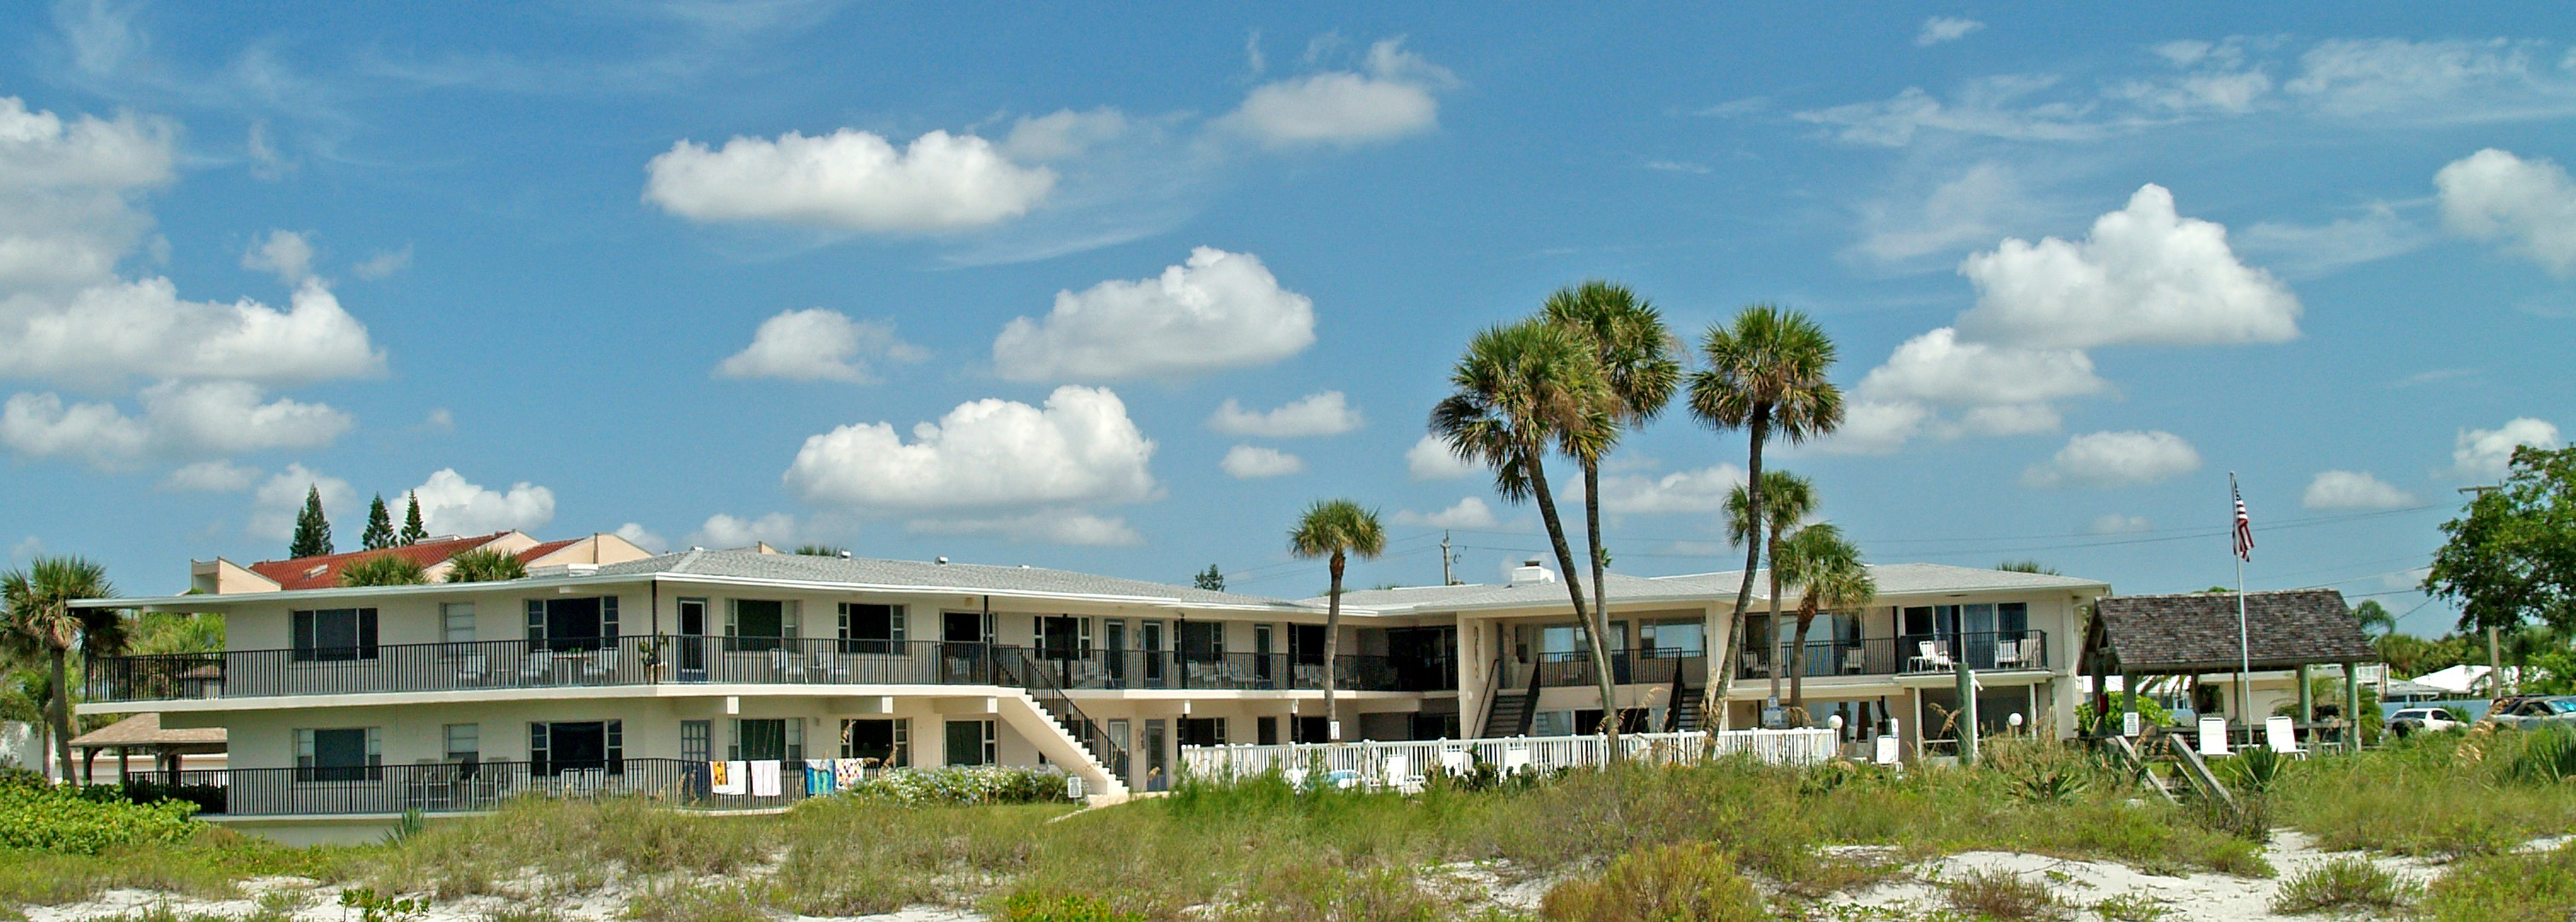 Beachcomber In Venice Fl viewed from the Private Gulf of Mexico Beachfront